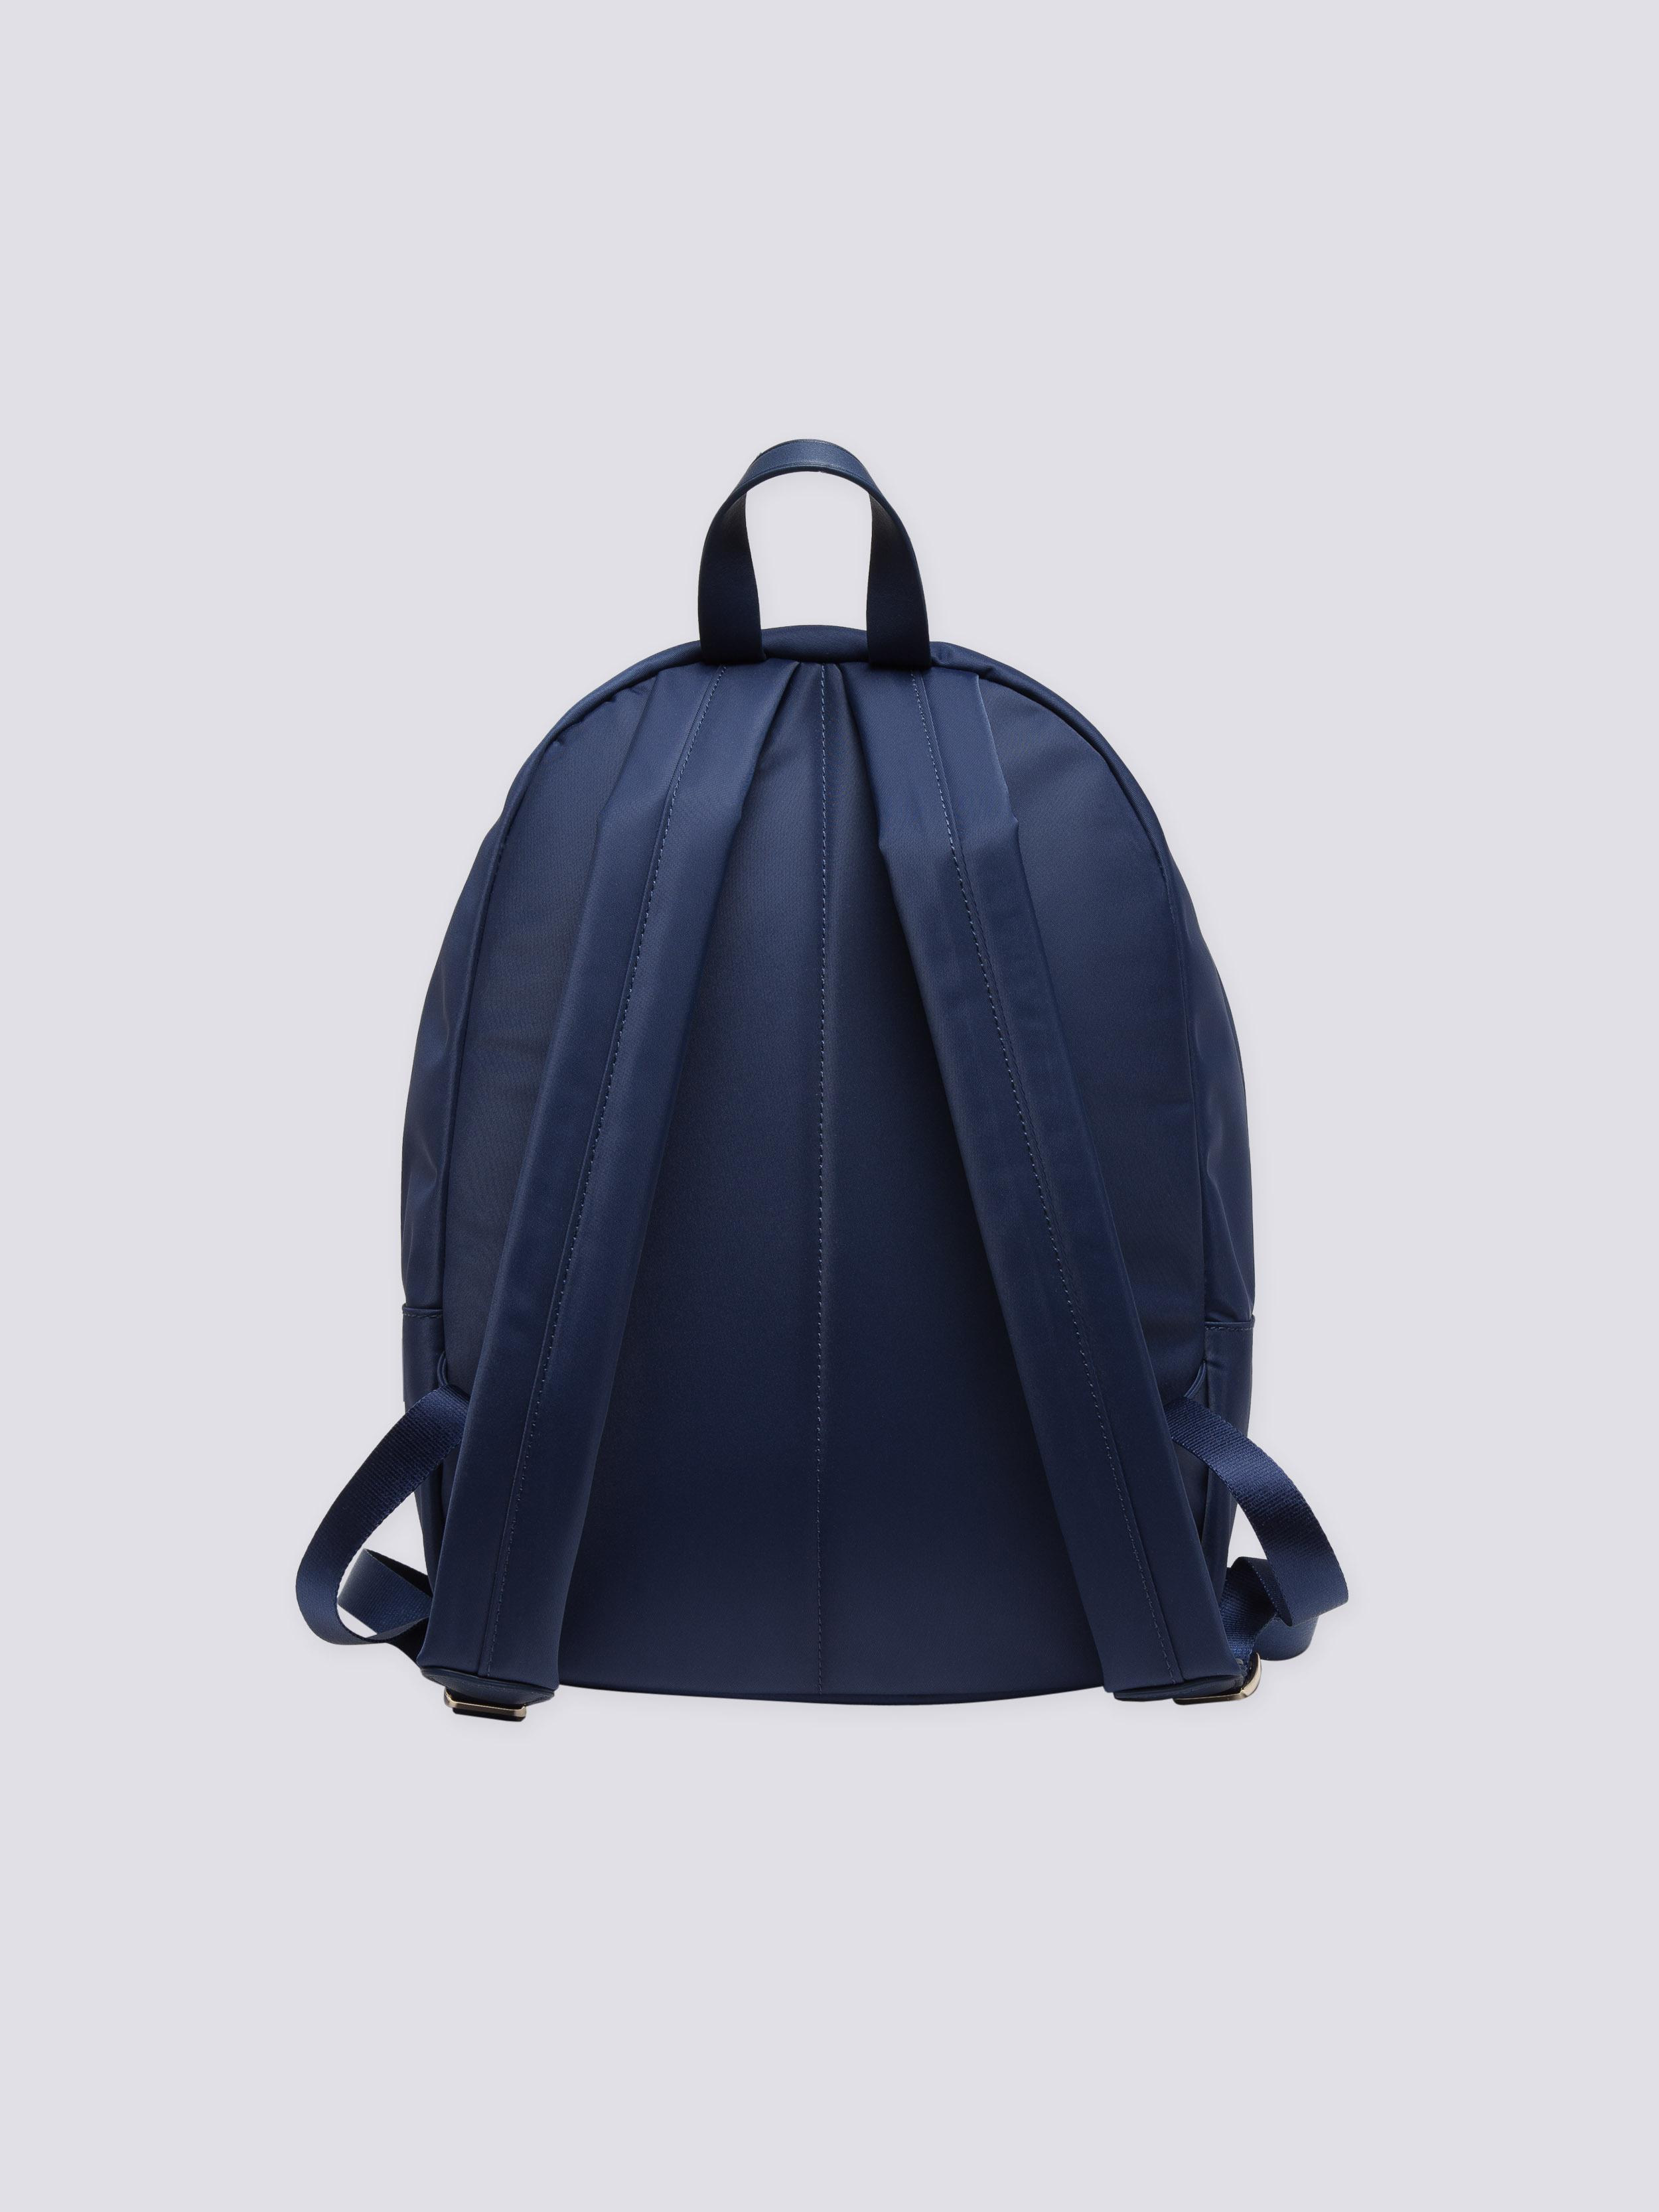 agnès b. Canvas Navy Blue Nylon And Leather Backpack